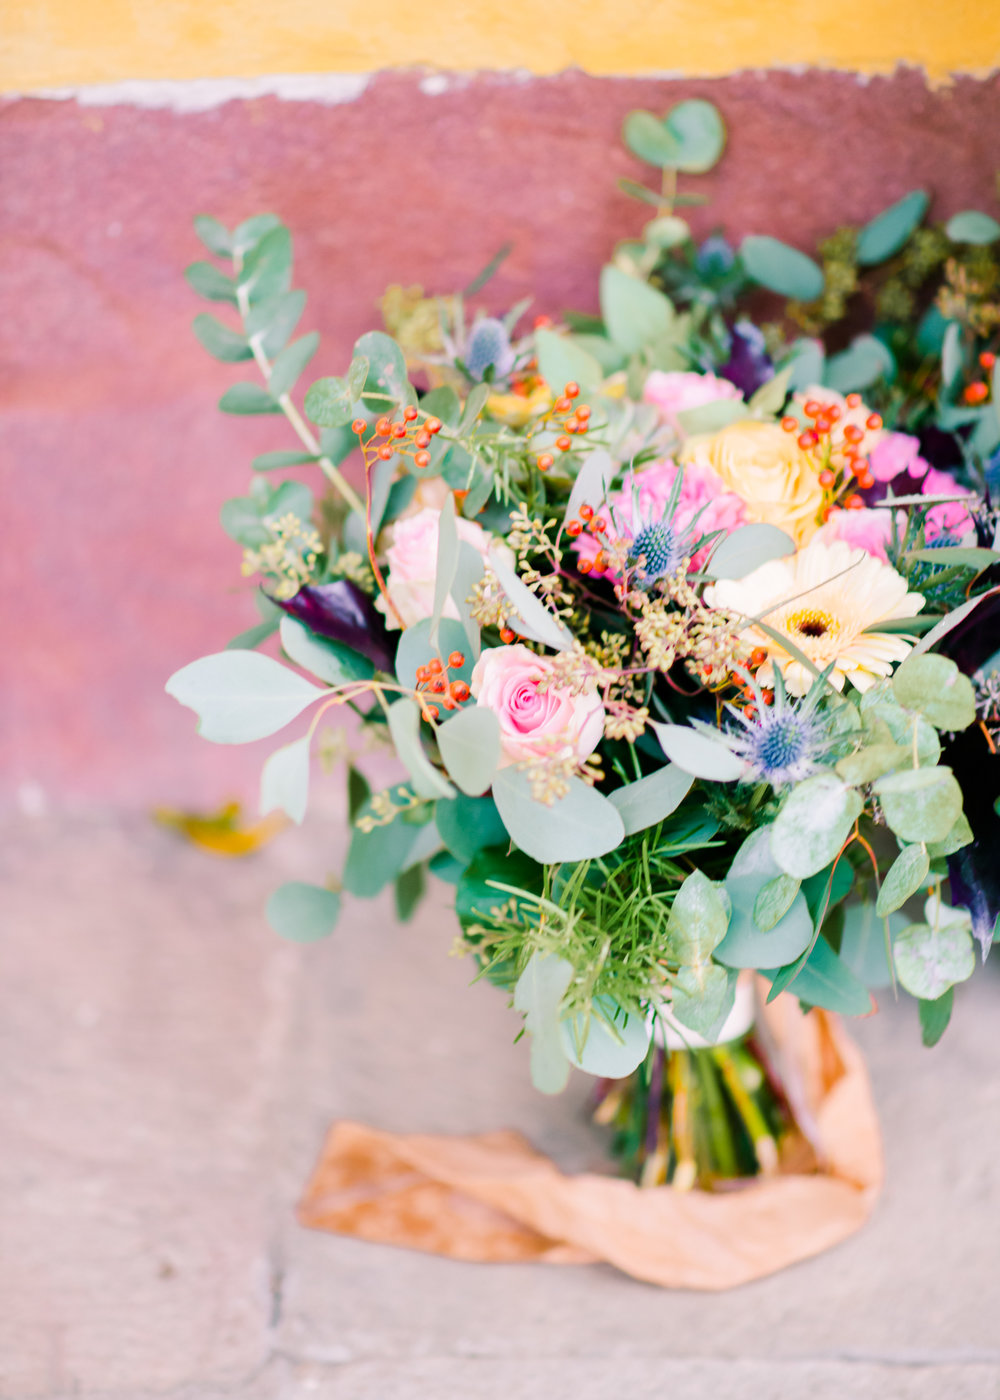 Elegant Organic Fall Swedish Bridal Wedding Styled Shoot - Erika Alvarenga Photography-109.jpg